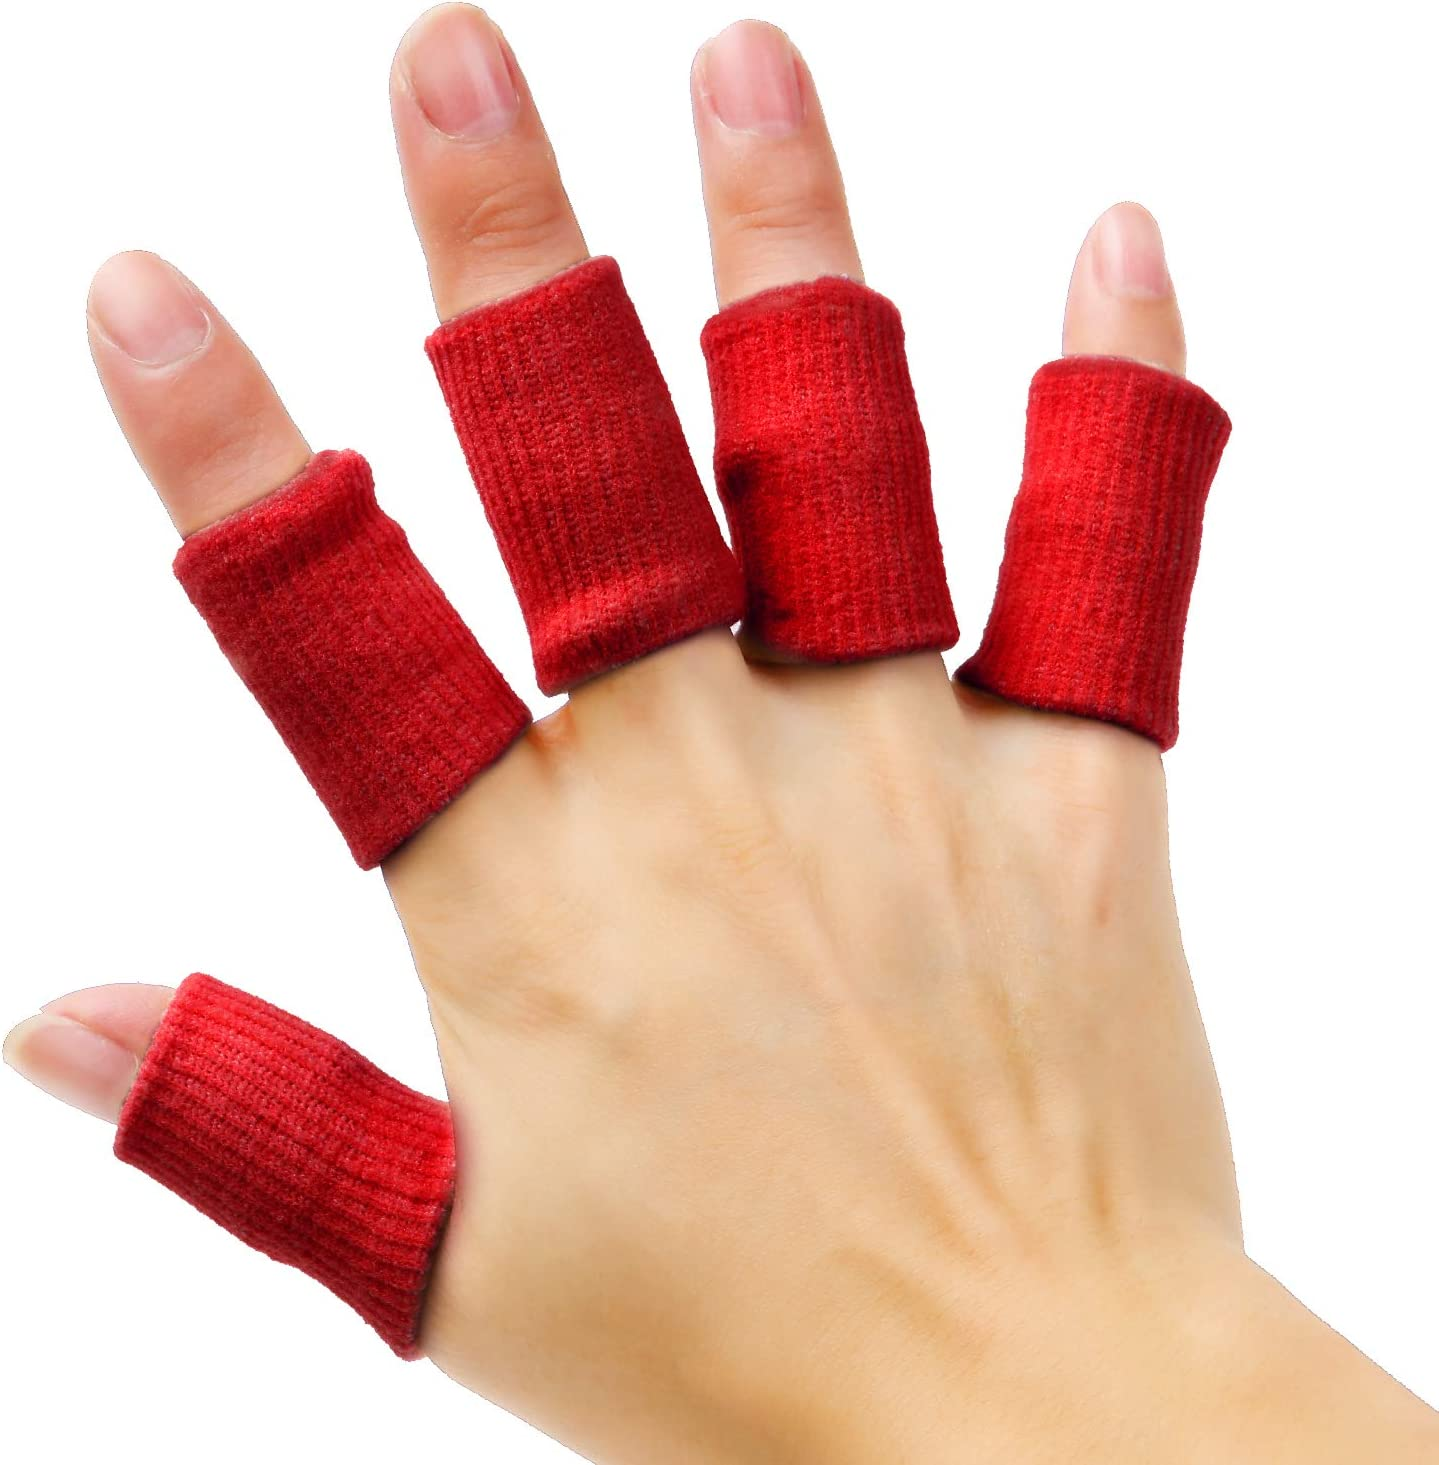 Senkary 20 Pieces Finger Sleeves Brace Ranking TOP6 Support Thumb Protectors Soldering